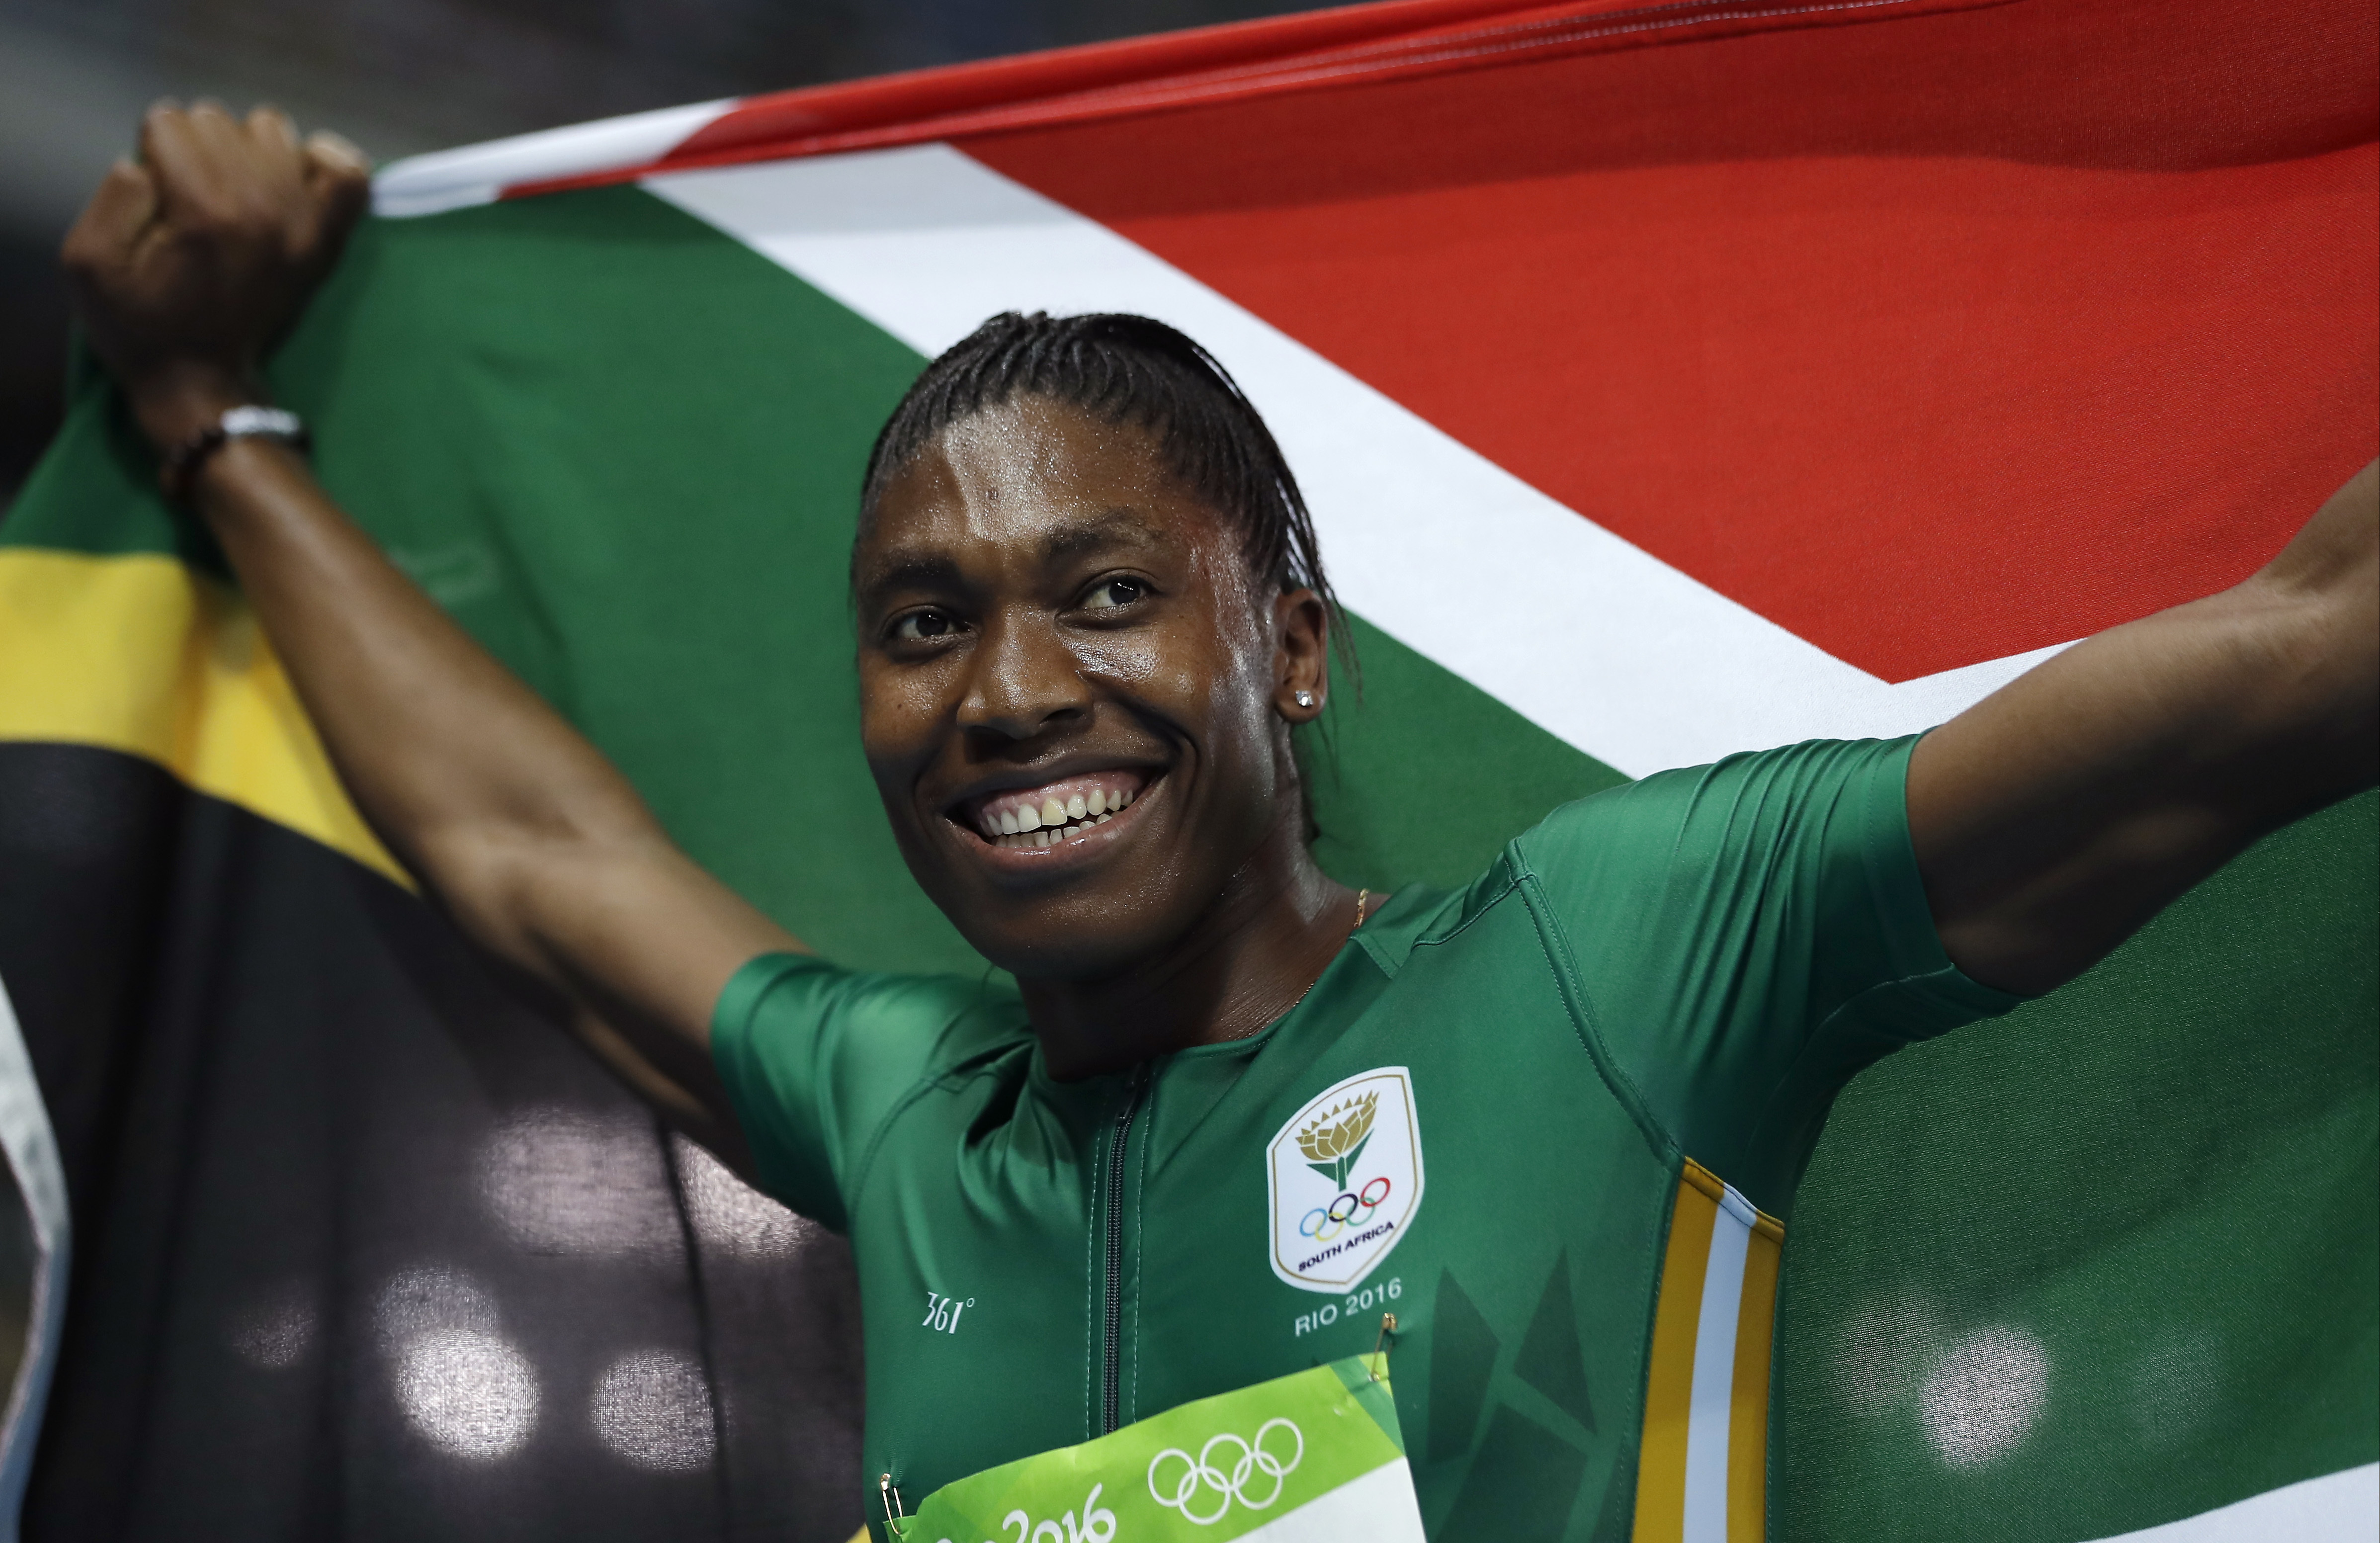 South Africa's Caster Semenya smiles after winning the gold medal in the women's 800-meter final during the athletics competitions of the 2016 Summer Olympics at the Olympic stadium in Rio de Janeiro, Brazil, Saturday, Aug. 20, 2016. (AP Photo/Matt Slocum